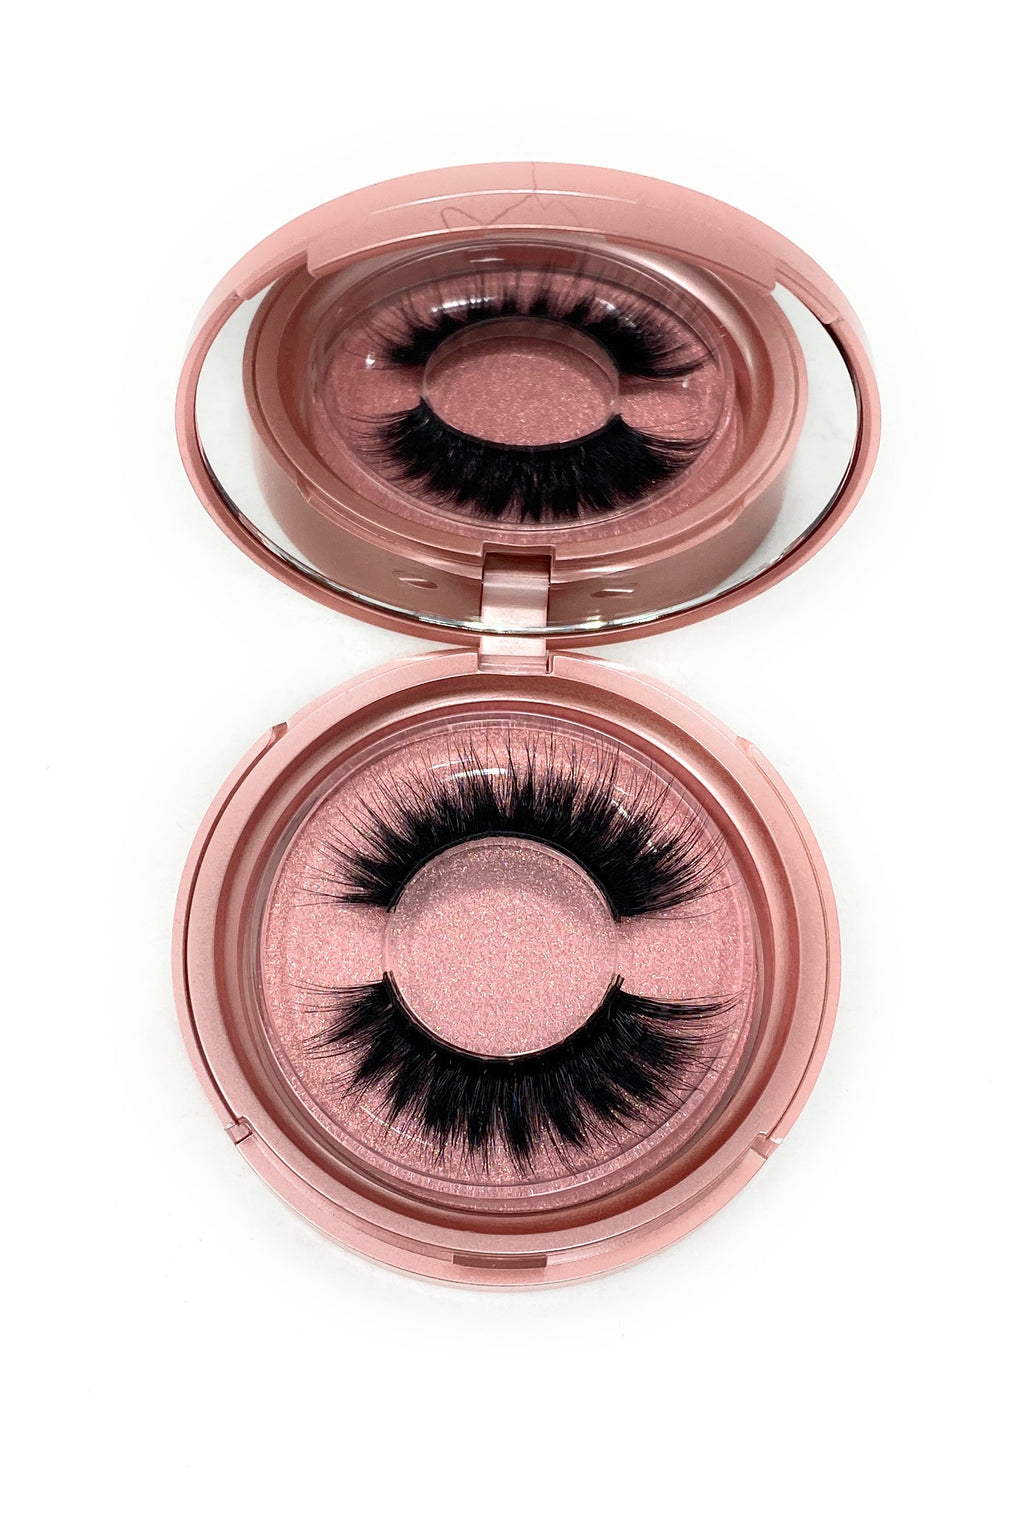 3D Lash in the style Spoilt, Fluffy, Reusable, Flexible, Lightweight Lashes with Mirror